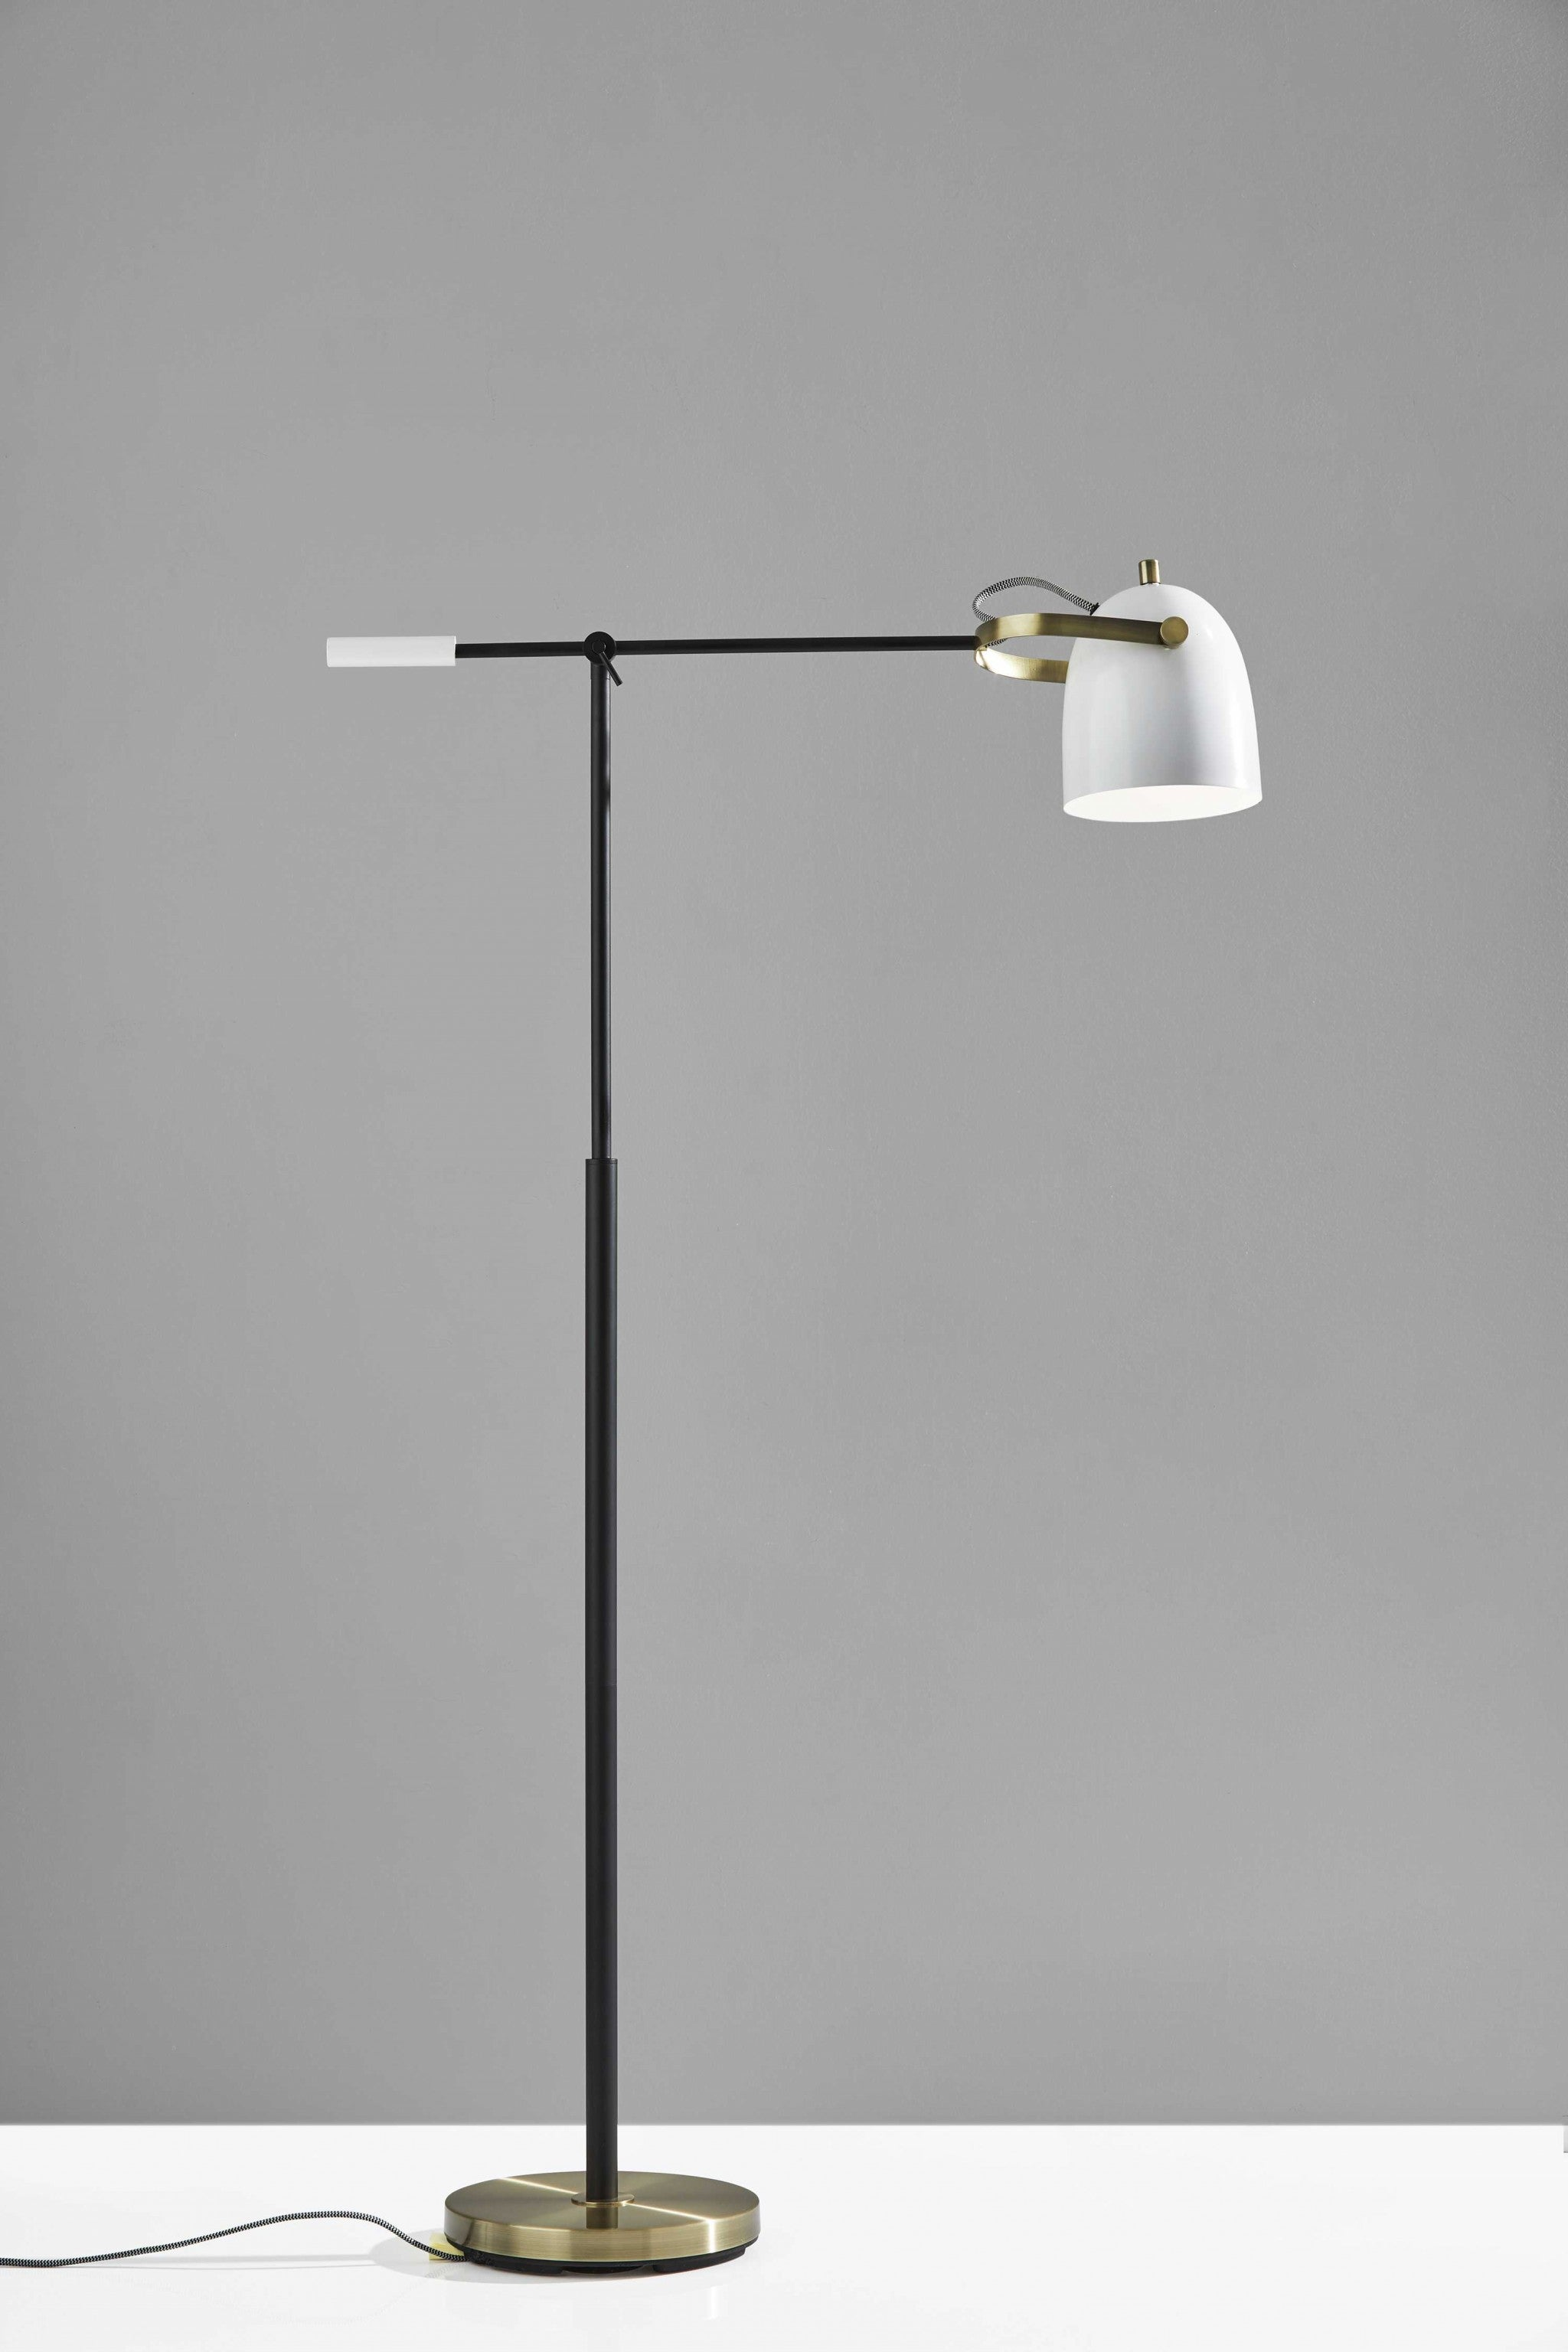 Matte Black and Antique Brass Metal Floor Lamp with Adjustable Arm and White Metal Shade